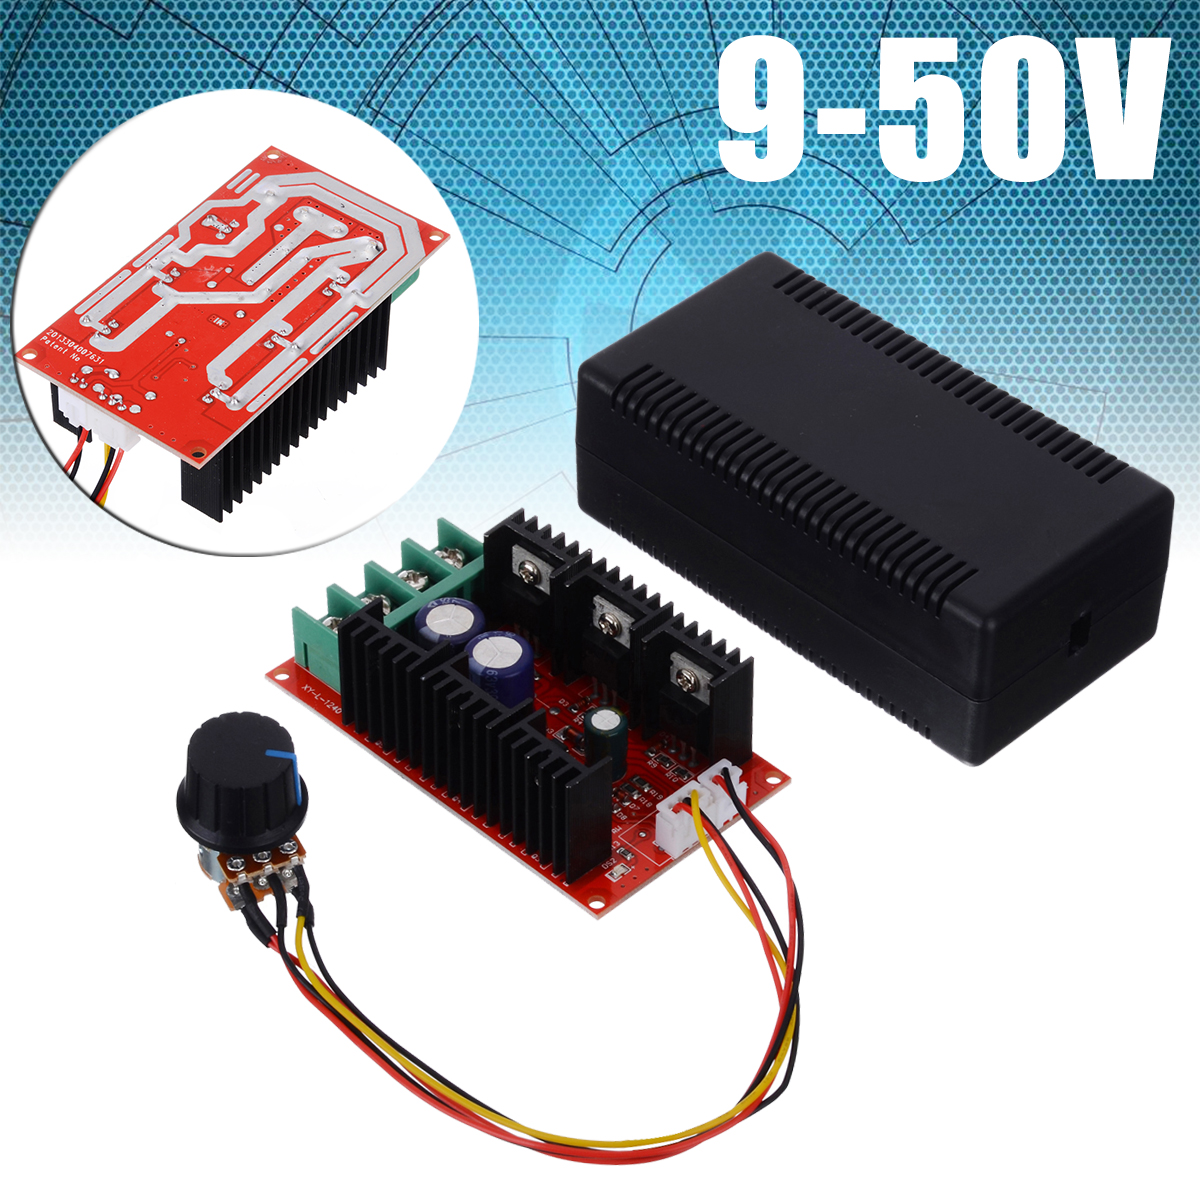 9-50V 2000W 40A Motor Speed Control Module PWM HHO RC Controller DC 12V 24V 48V Electrical Equipments & Supplies